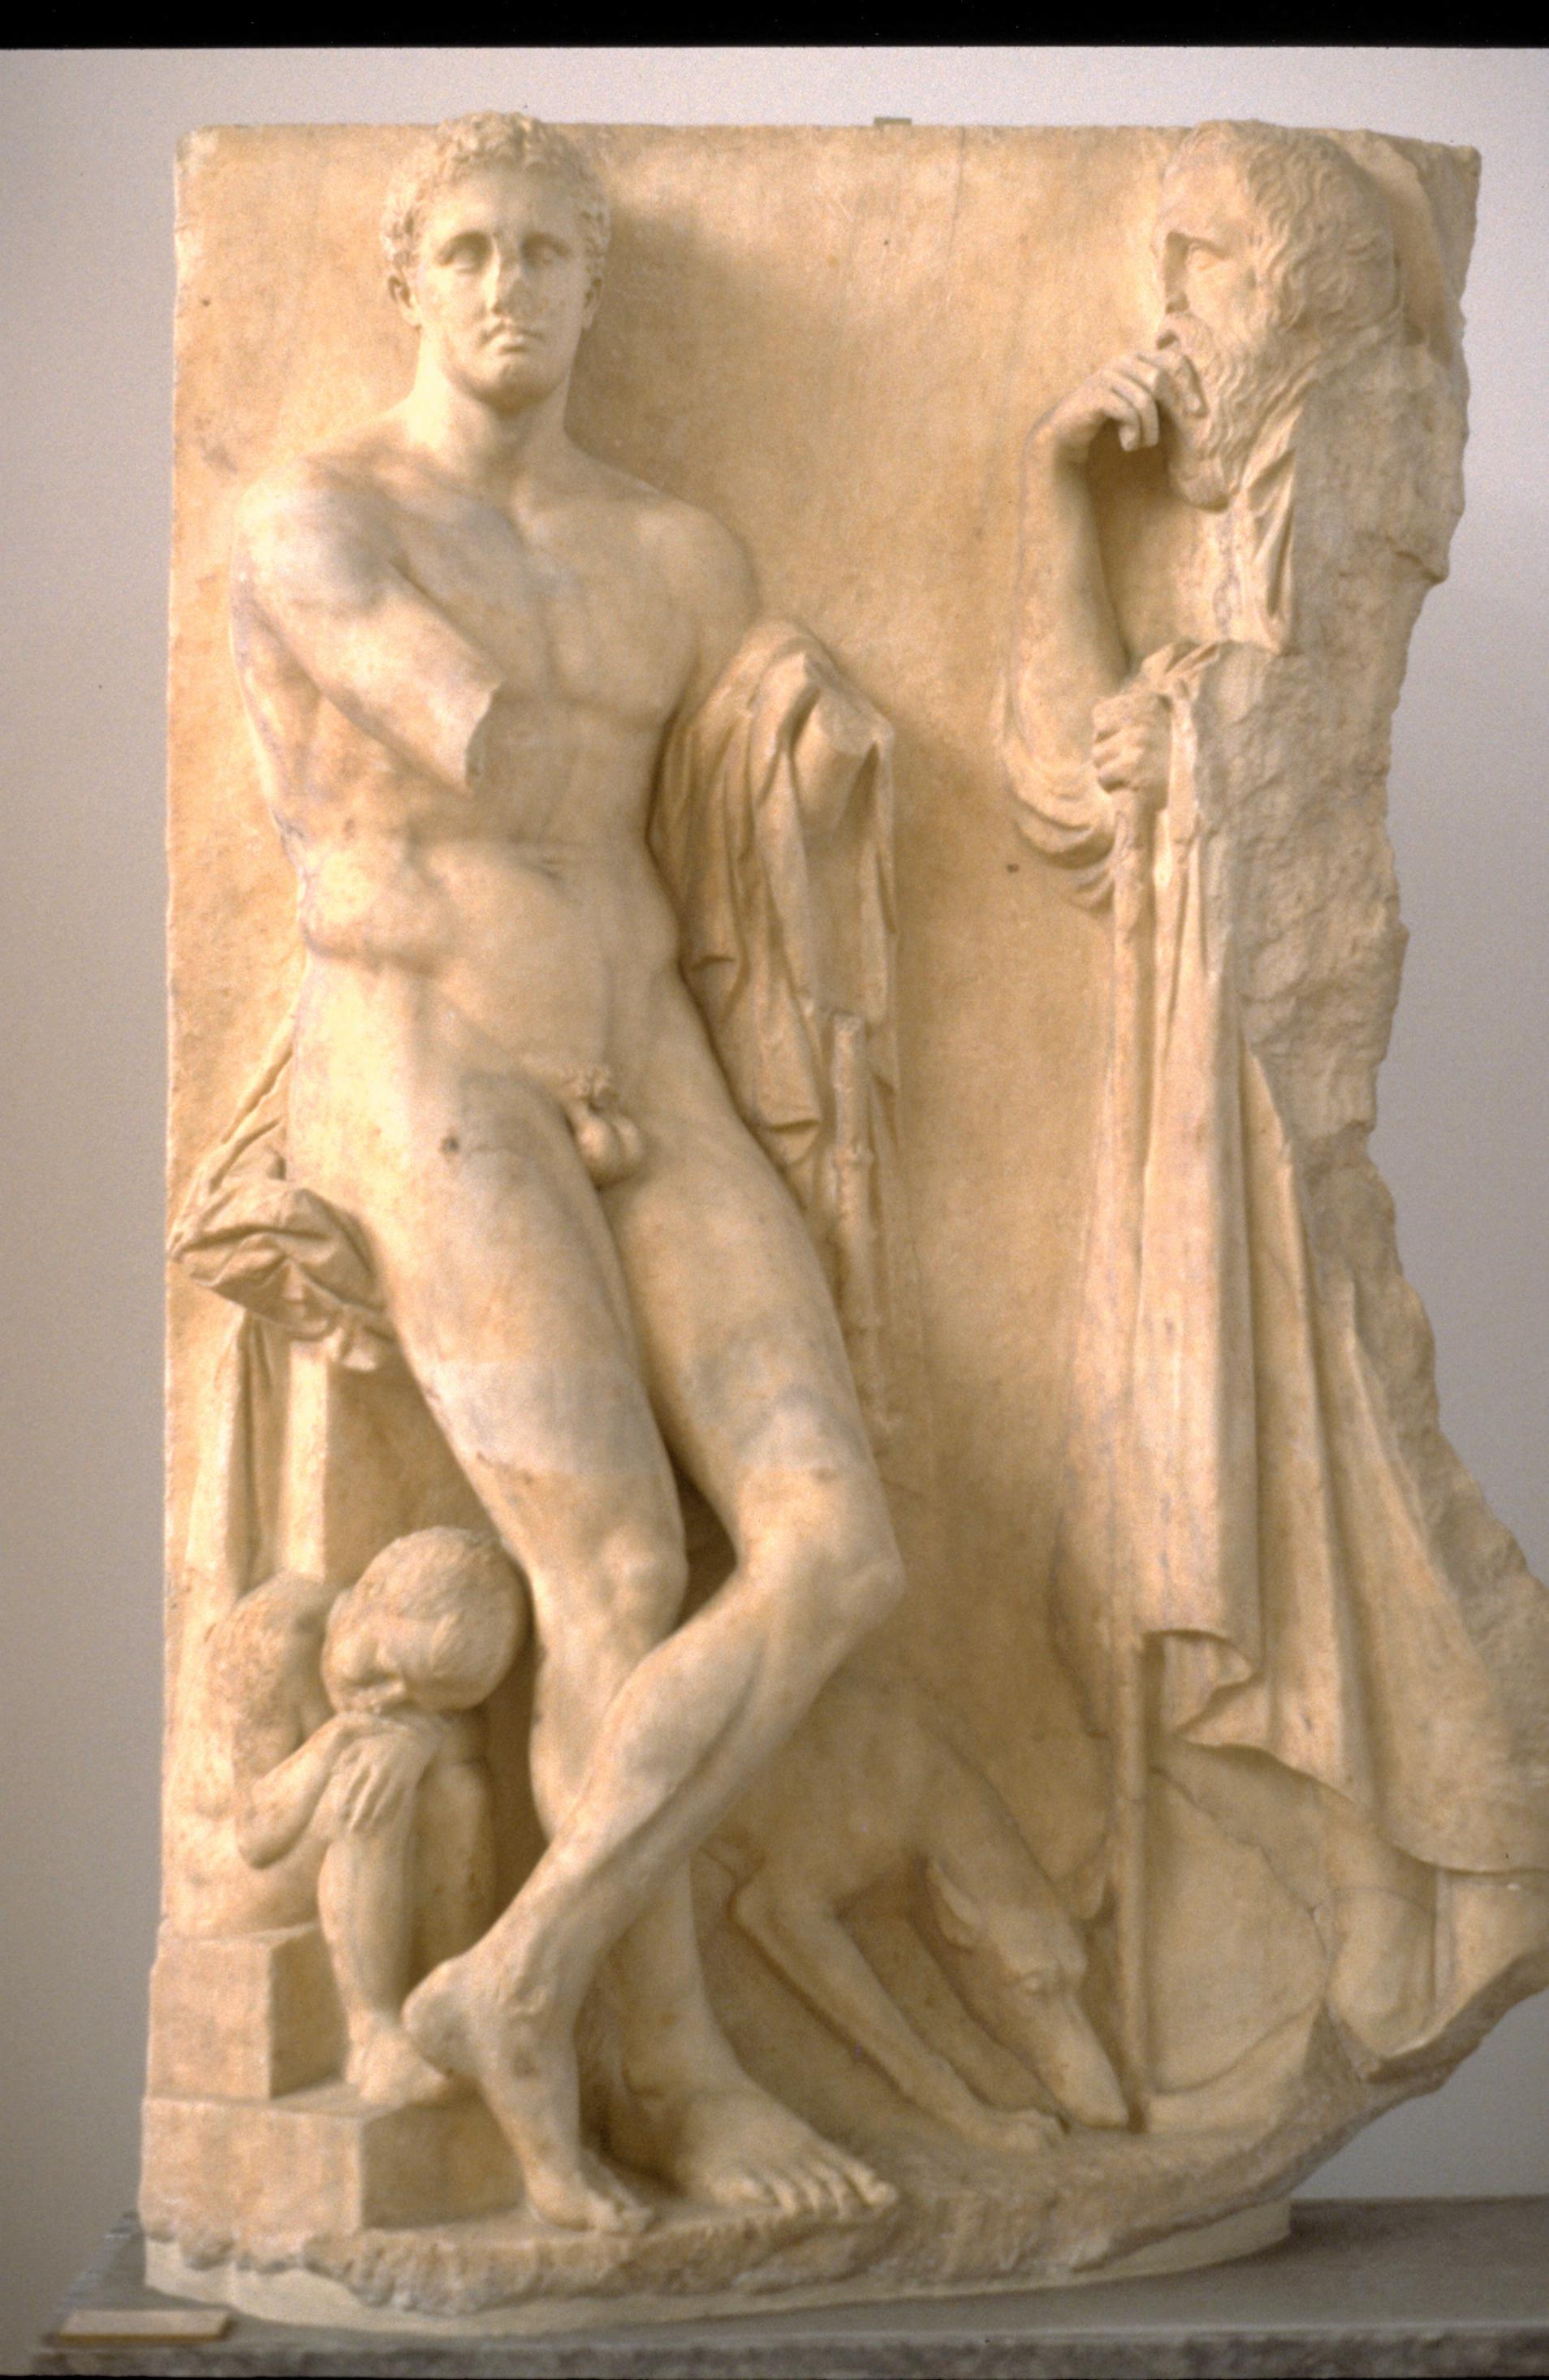 funeral stele, link to Thucydides page